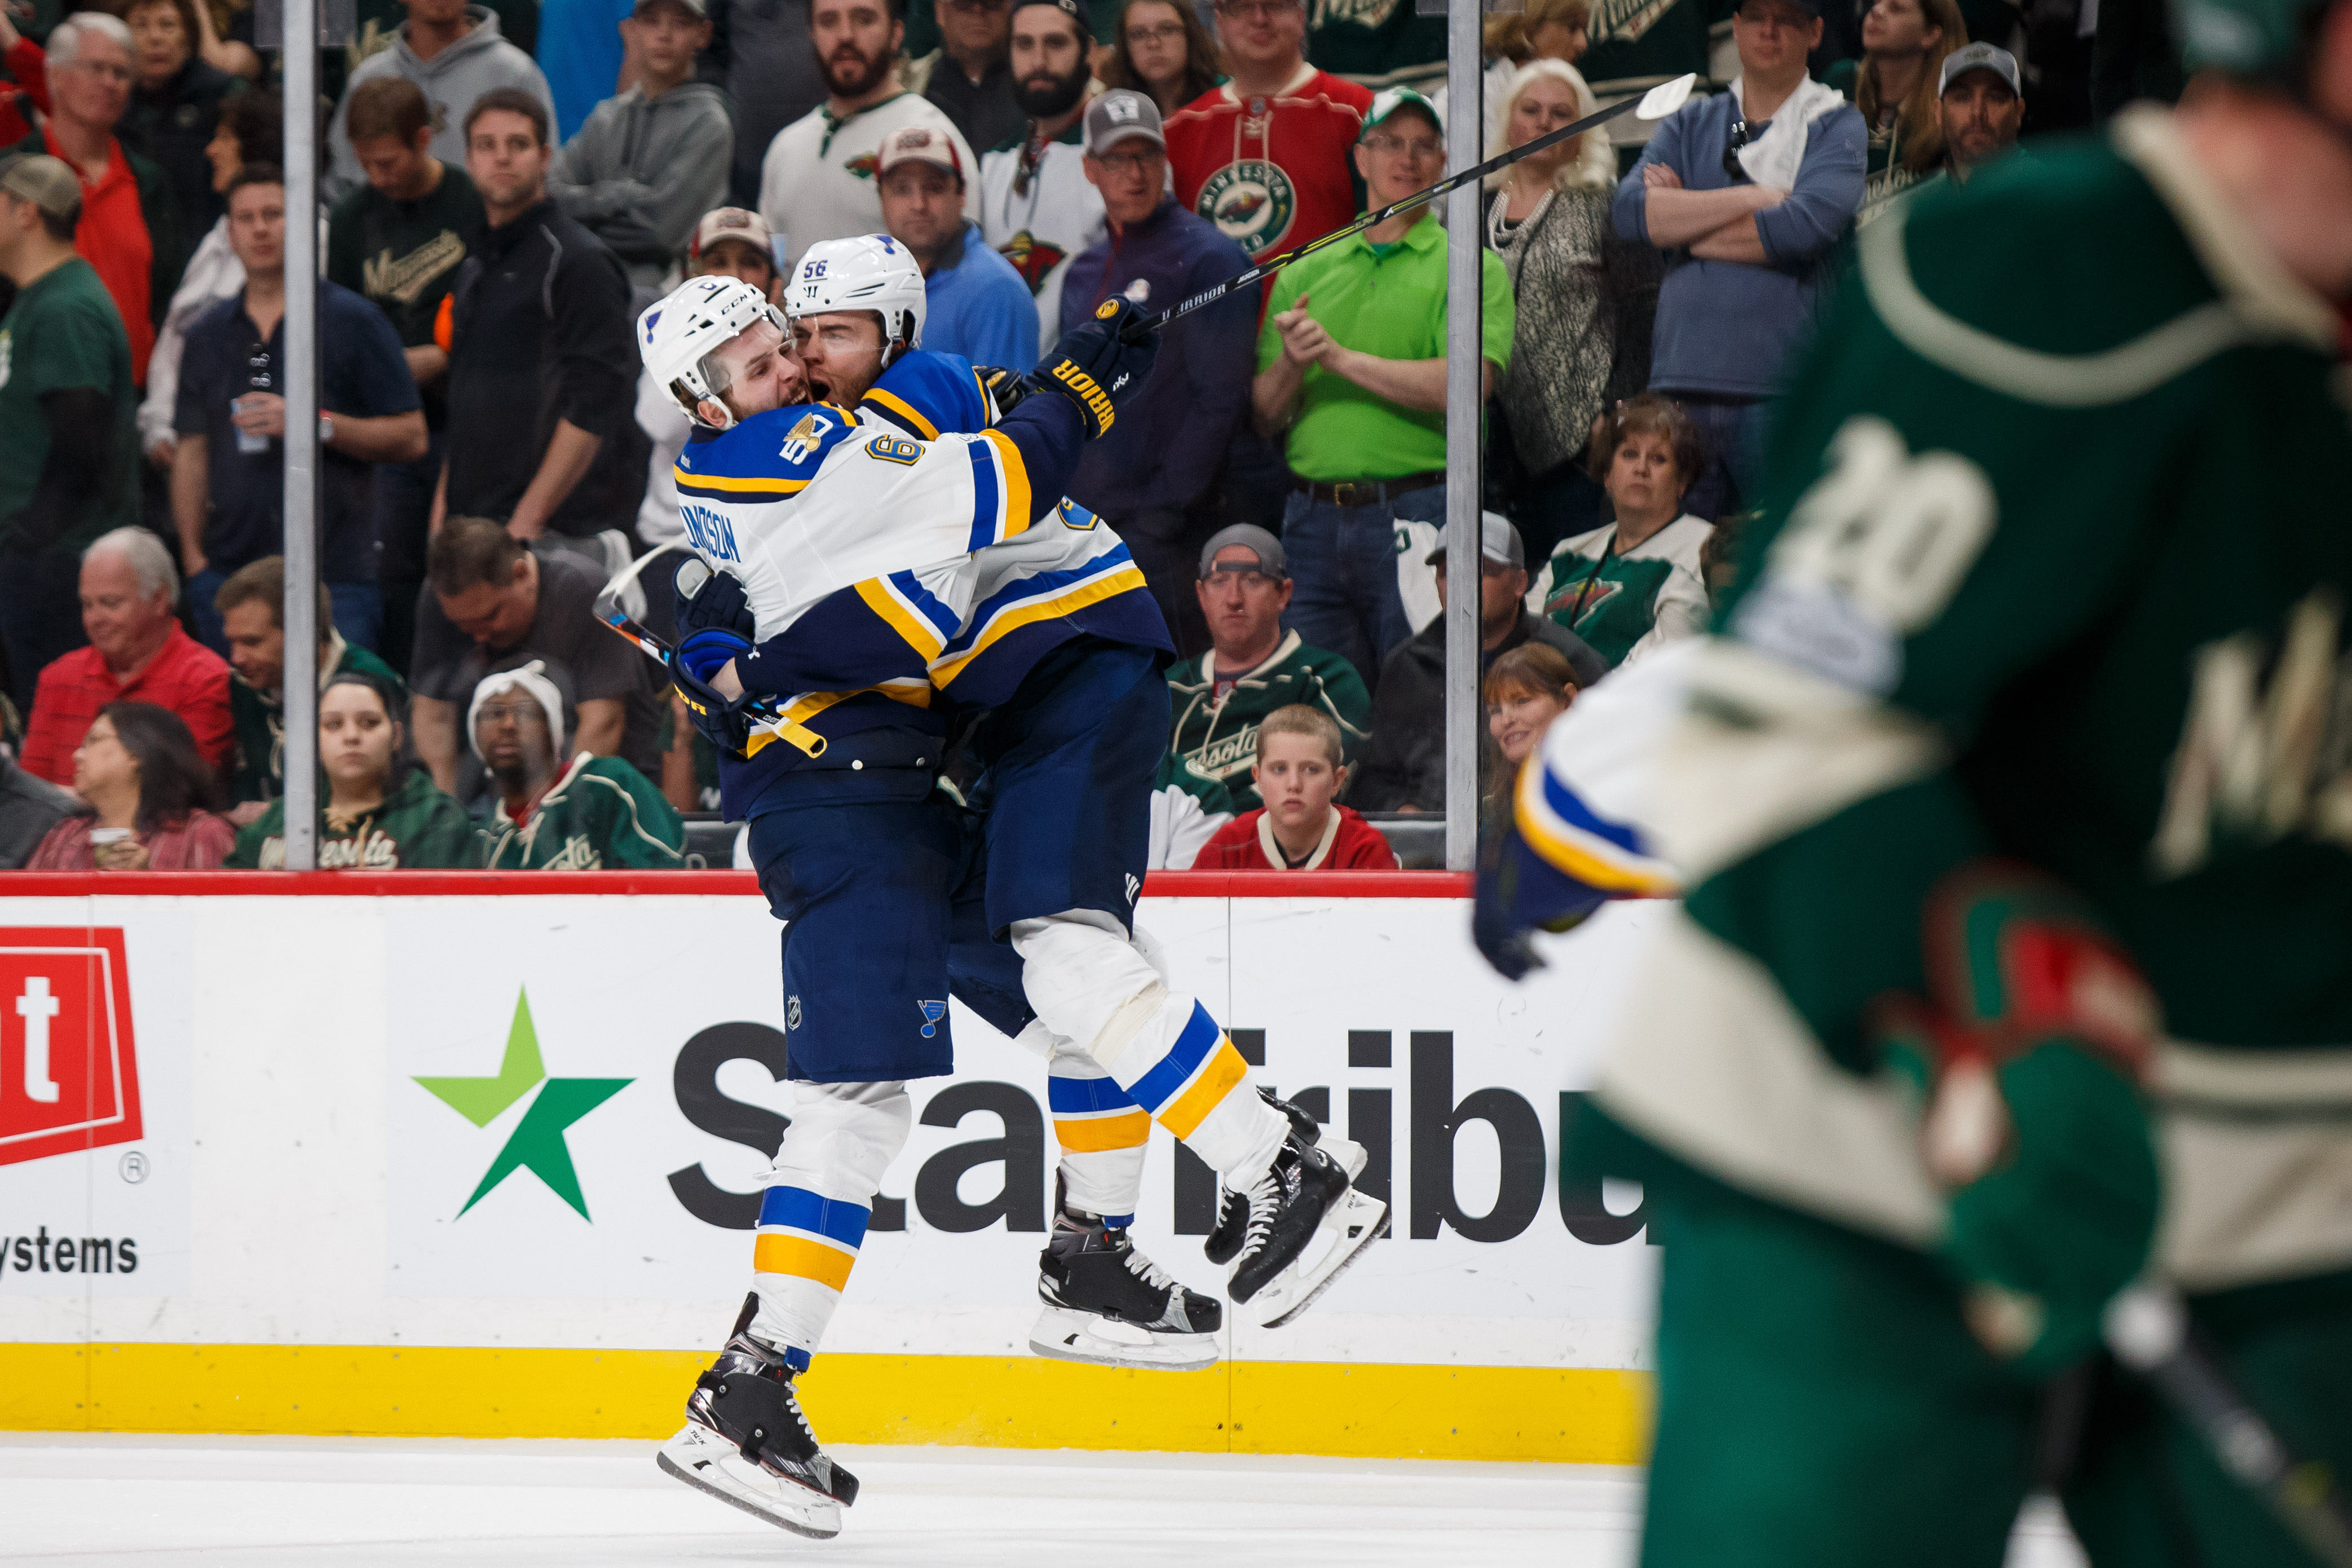 10025628-nhl-stanley-cup-playoffs-st.-louis-blues-at-minnesota-wild